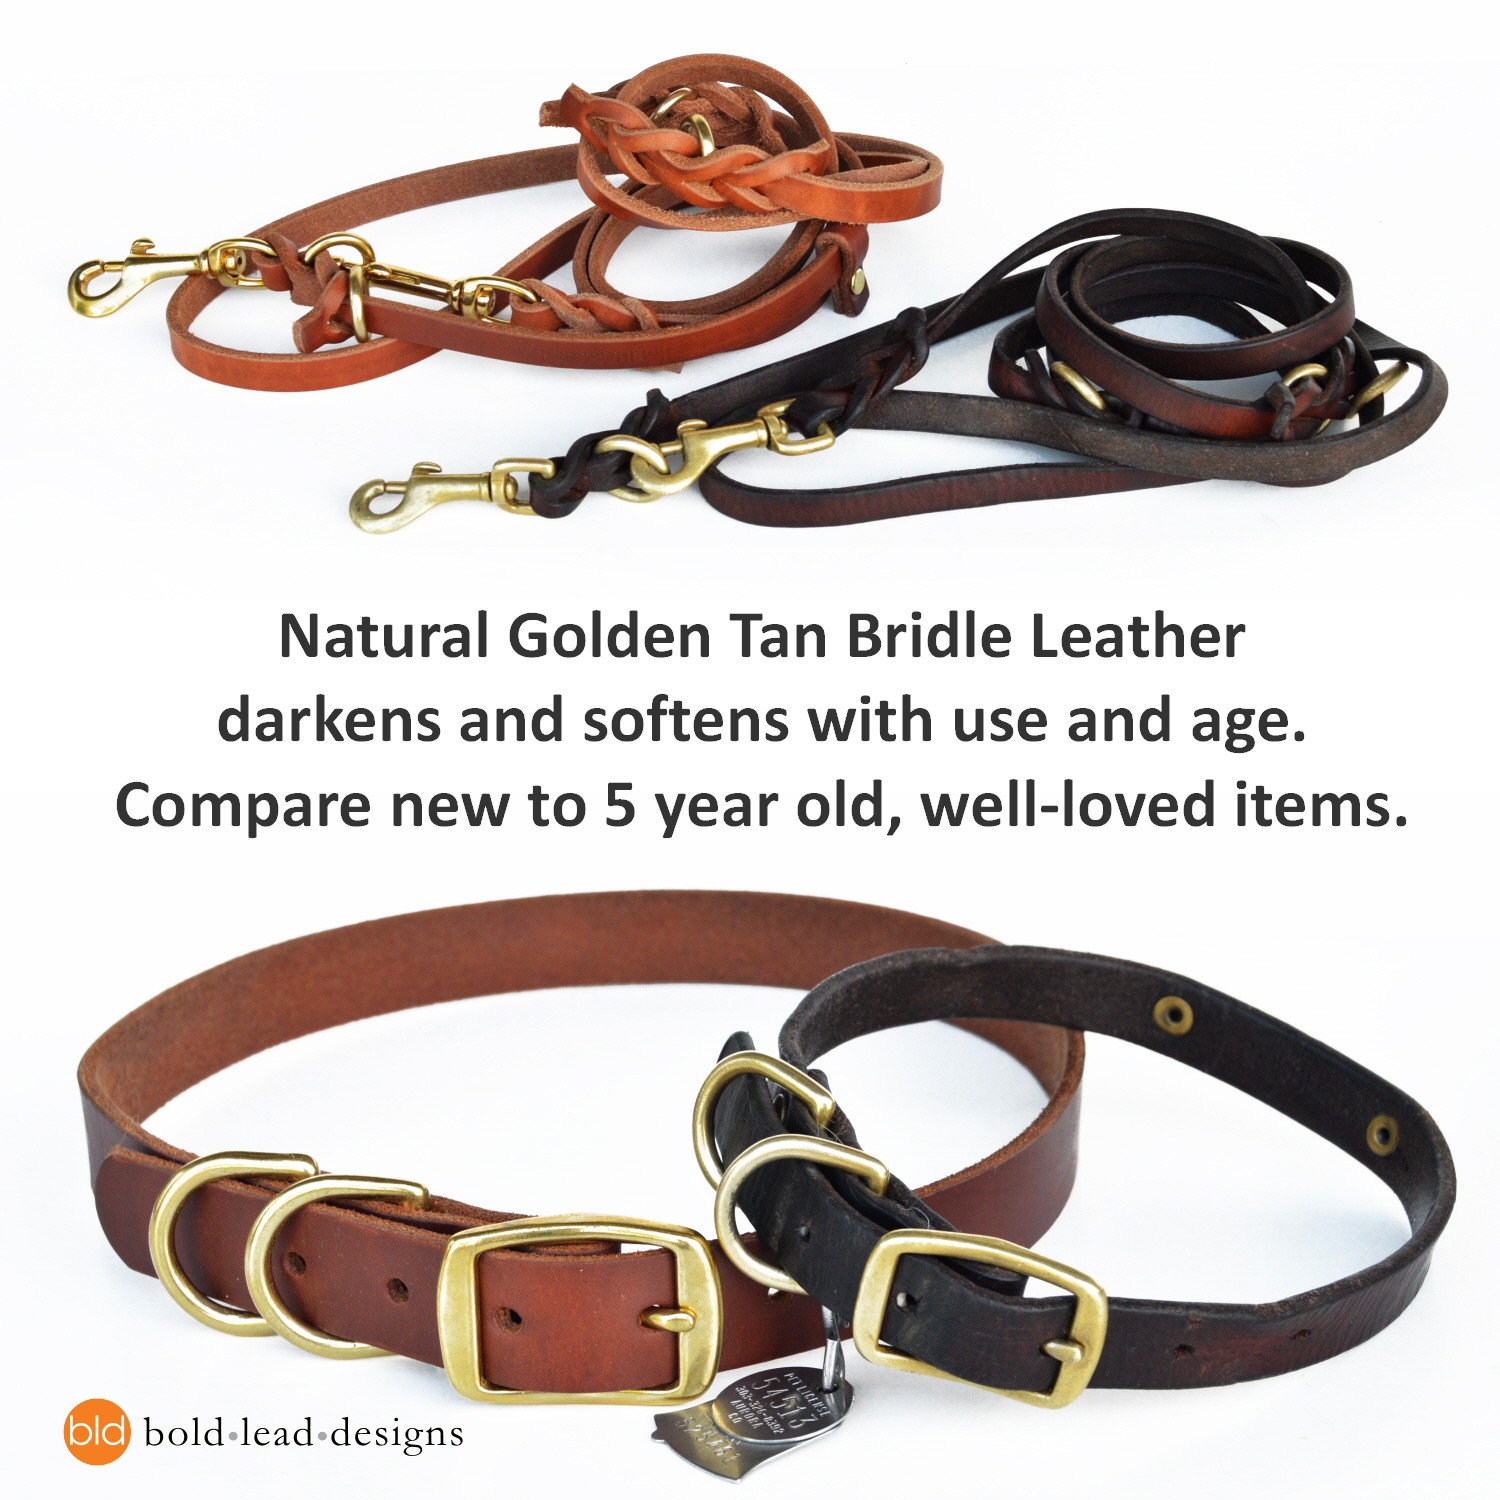 Colorful Dog collar Quick Release Dog Collar in Black Leather and Brass Hardware for Small and Medium Dogs Dog Collar